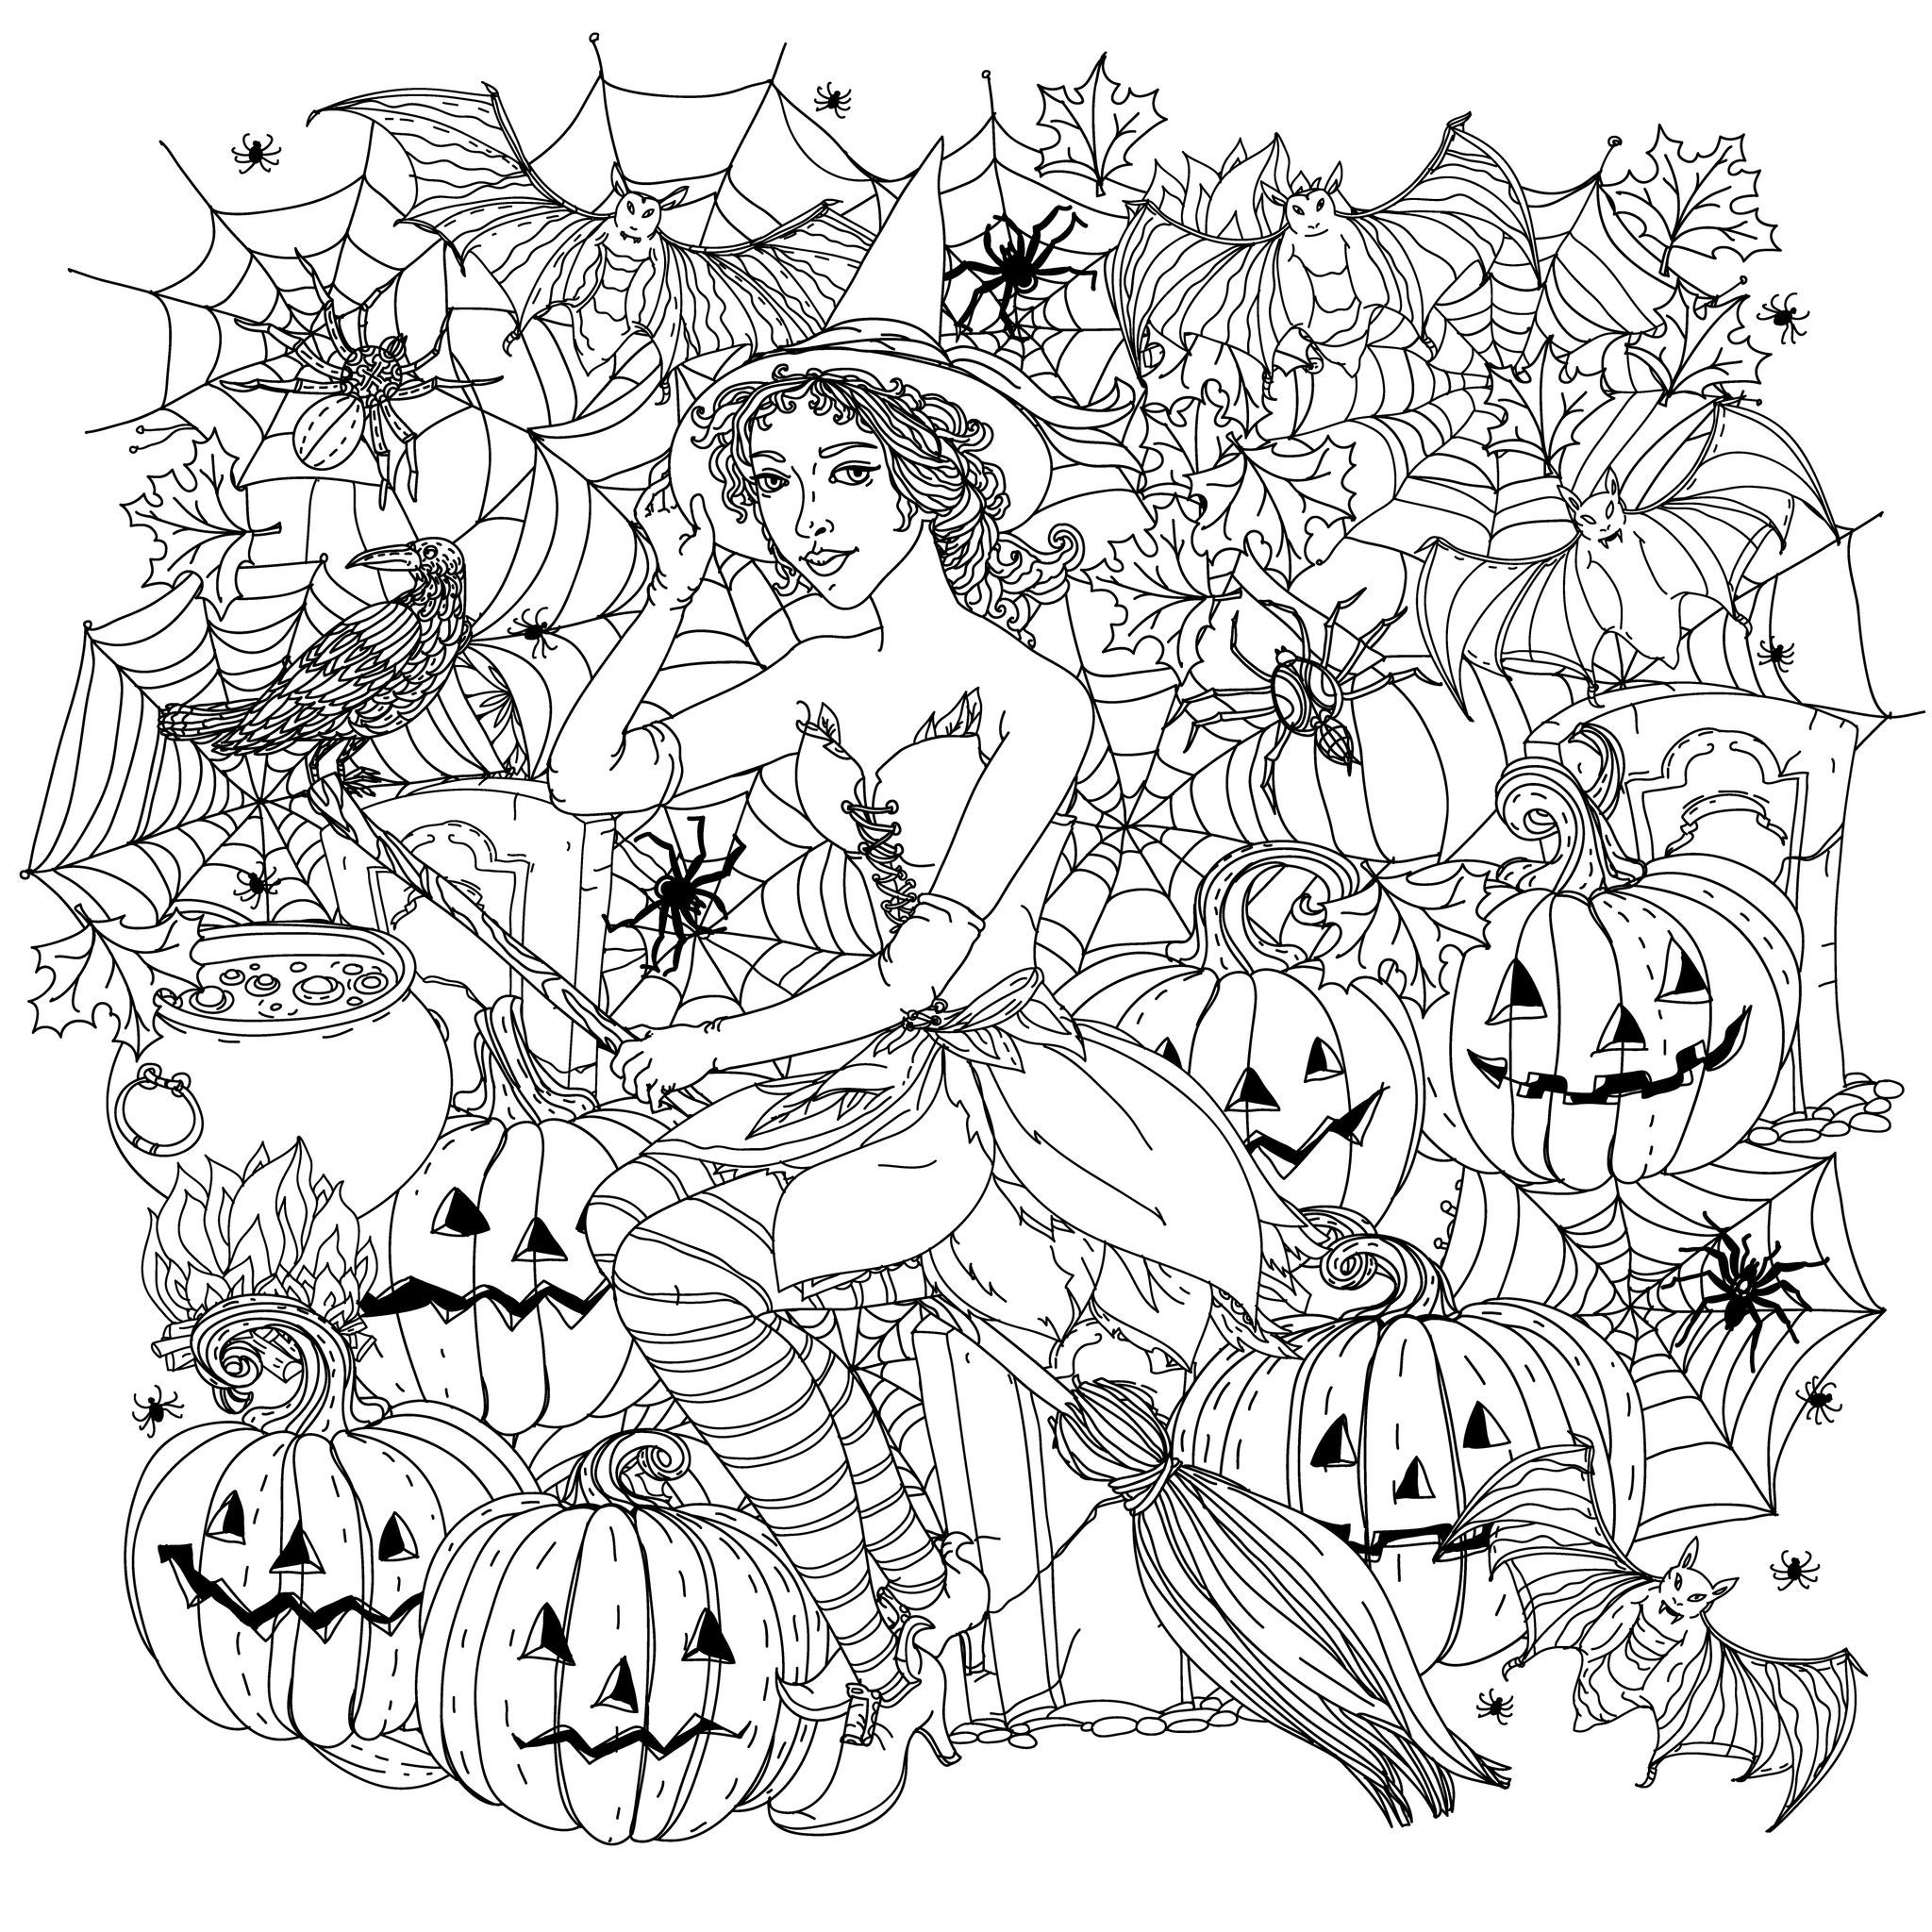 free halloween coloring sheets for adults incredible fashion woman dressed like a witch crows coloring adults free halloween for sheets